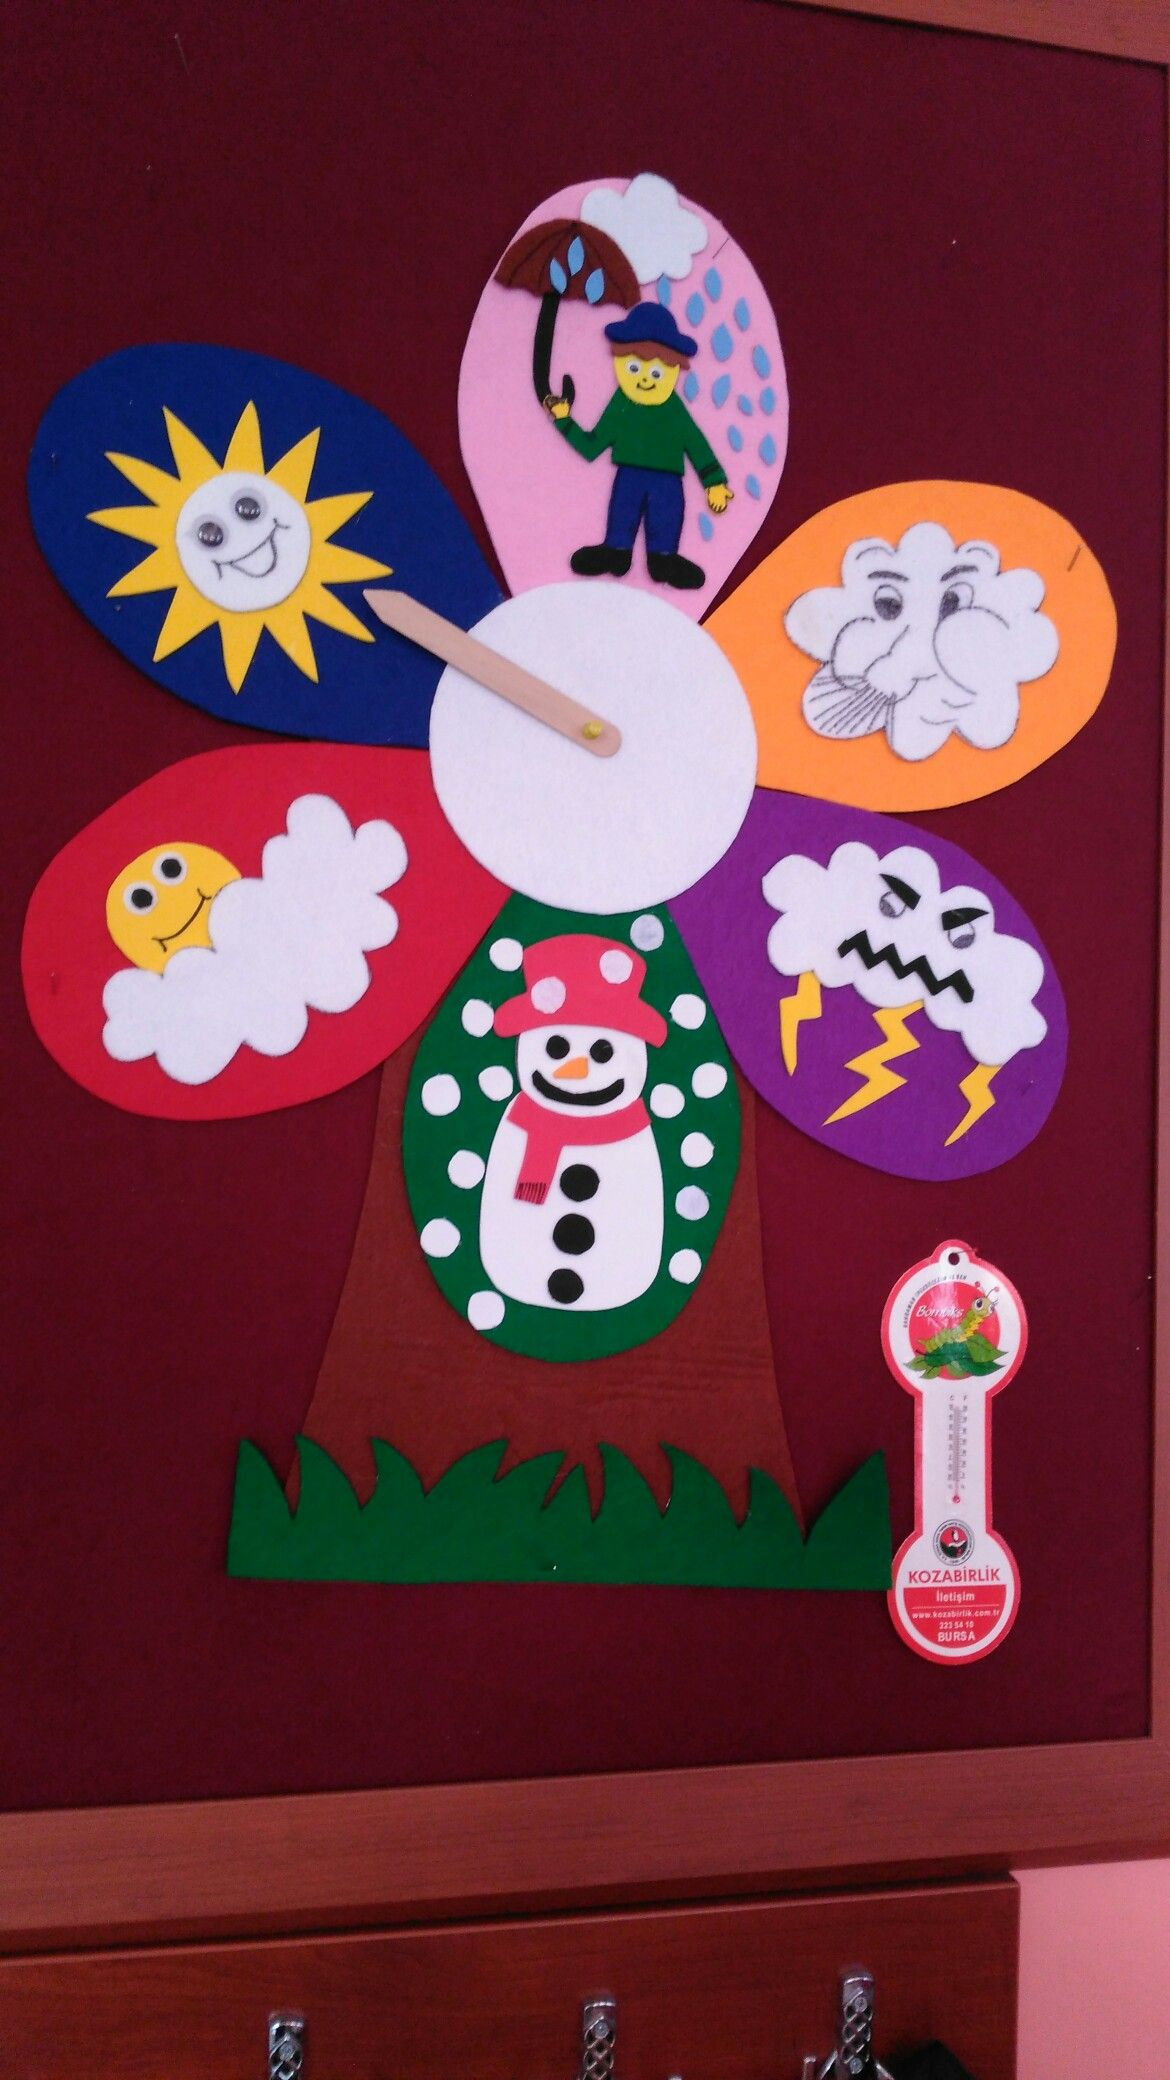 Hobby Craft Ideas Kids Part - 29: Weather Crafts, Hobby Craft, Craft Activities, Classroom Decor, Kid Crafts,  Paper Crafts, Chart, Infant Crafts, Preschool